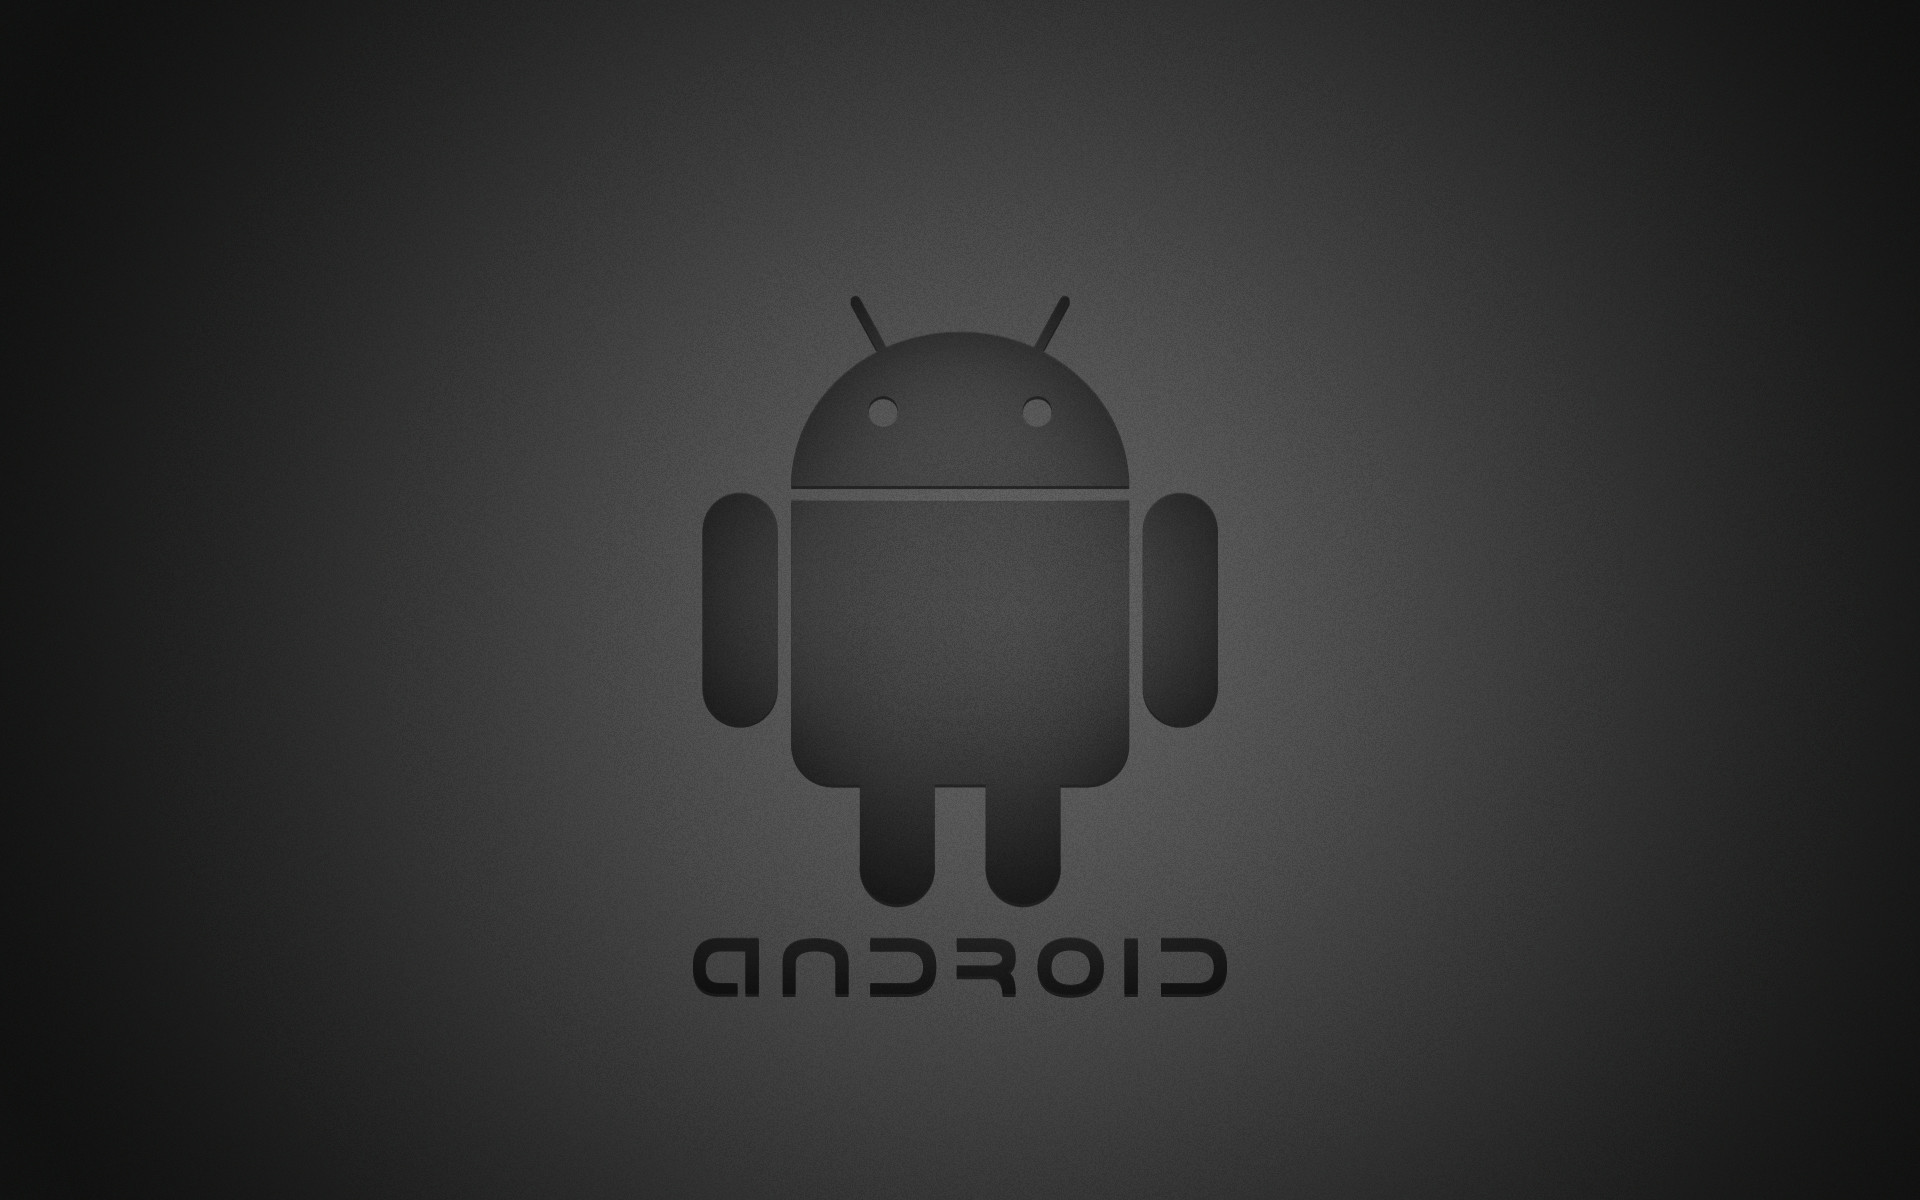 1920x1200 Android Wallpaper Size Free Download.